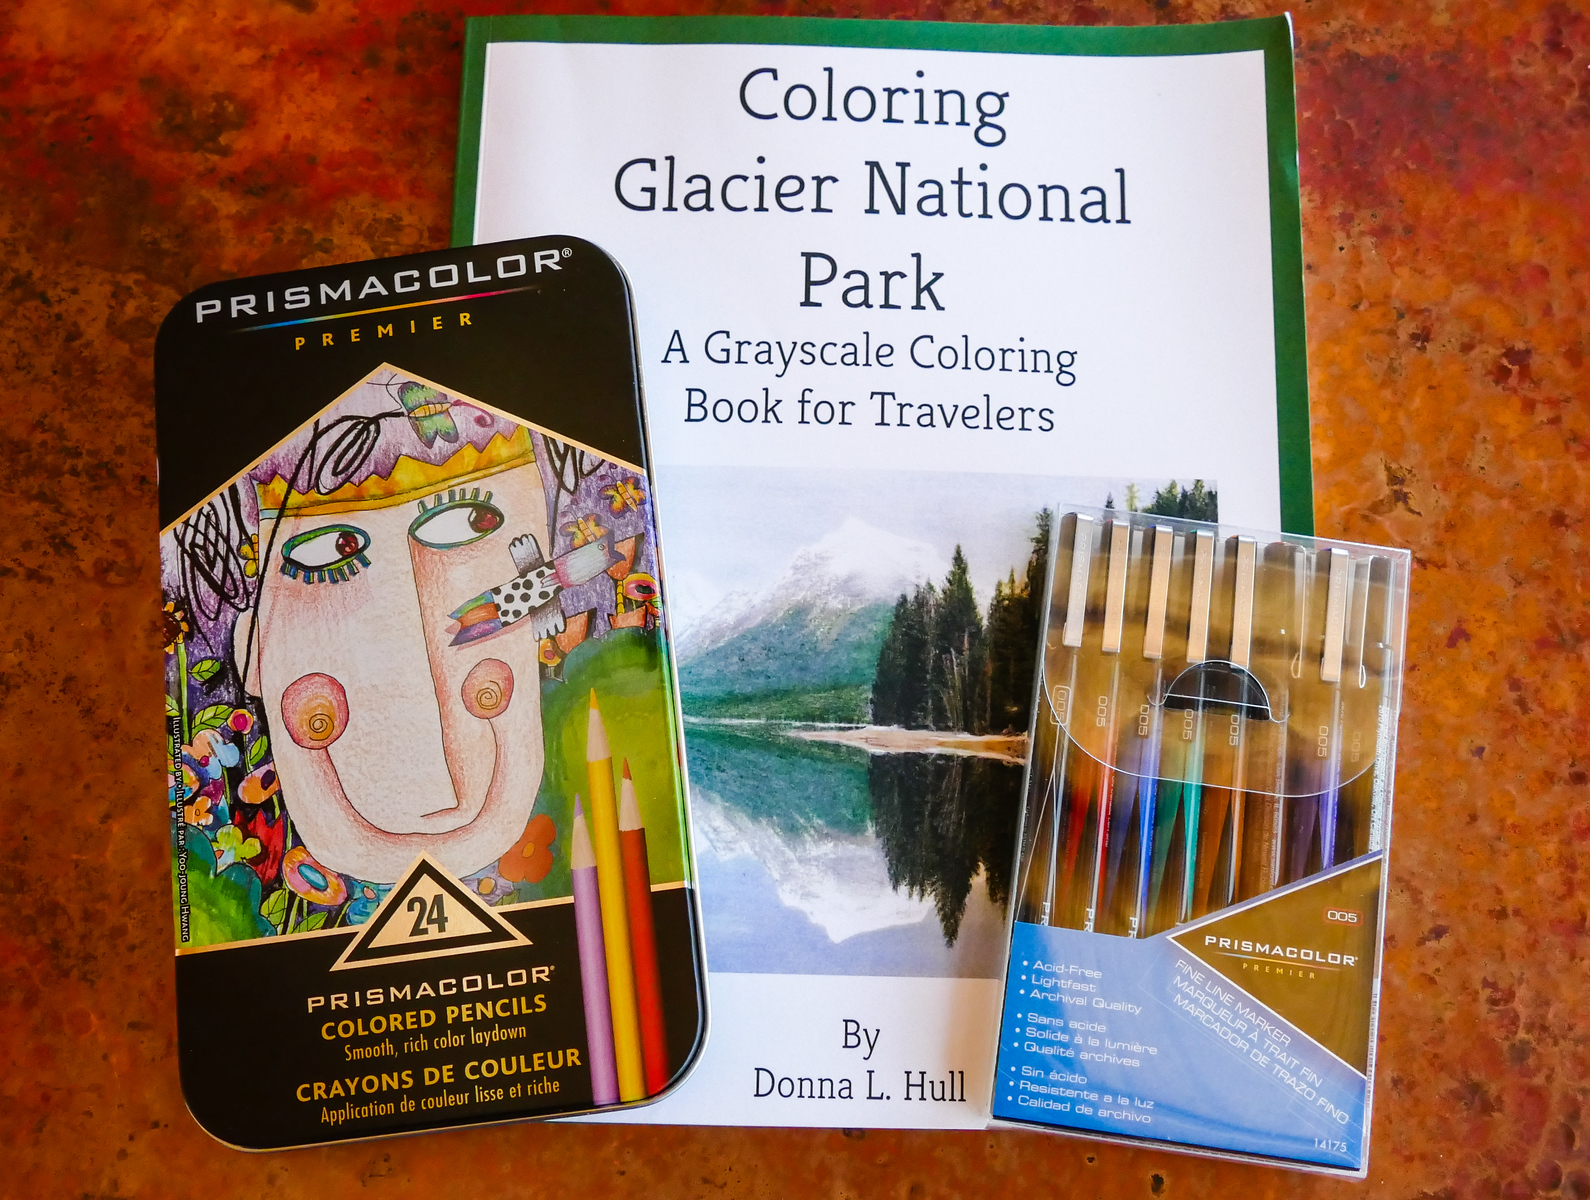 Coloring supplies to take on a trip. Relax and fight boarding by coloring during travel delays.